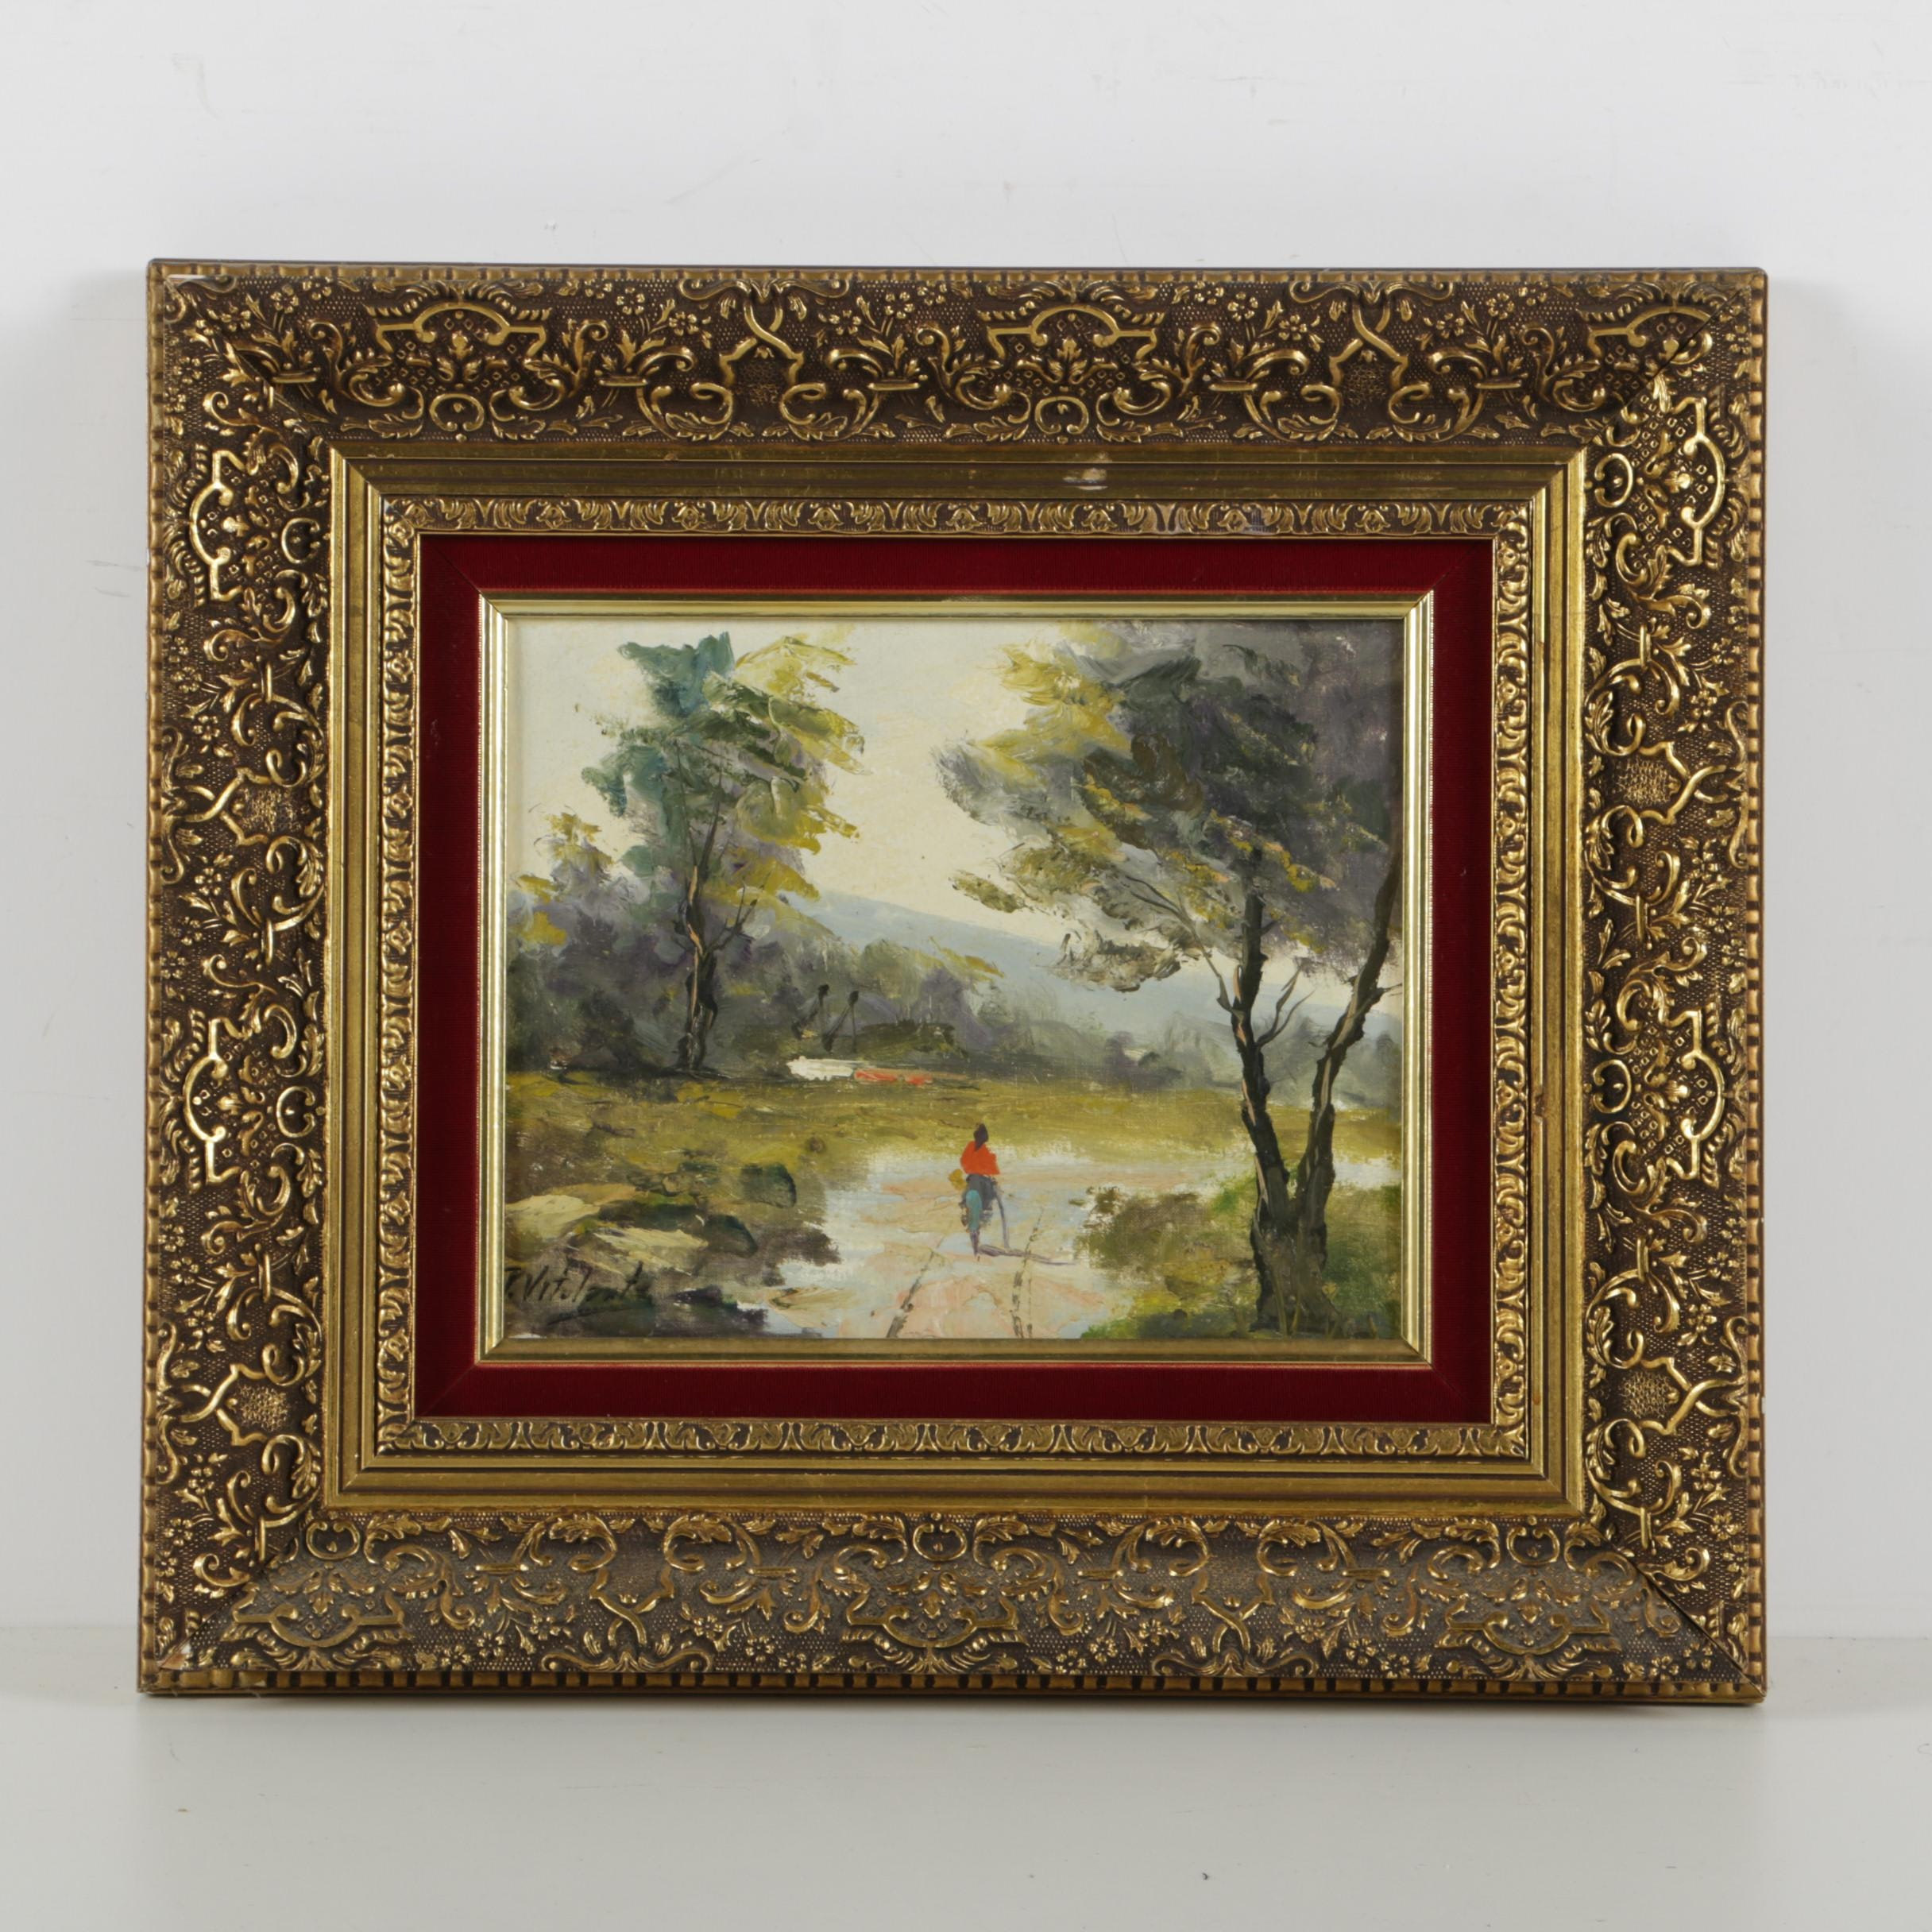 P. Vitolante Oil Painting on Canvas of an Outdoor Scene